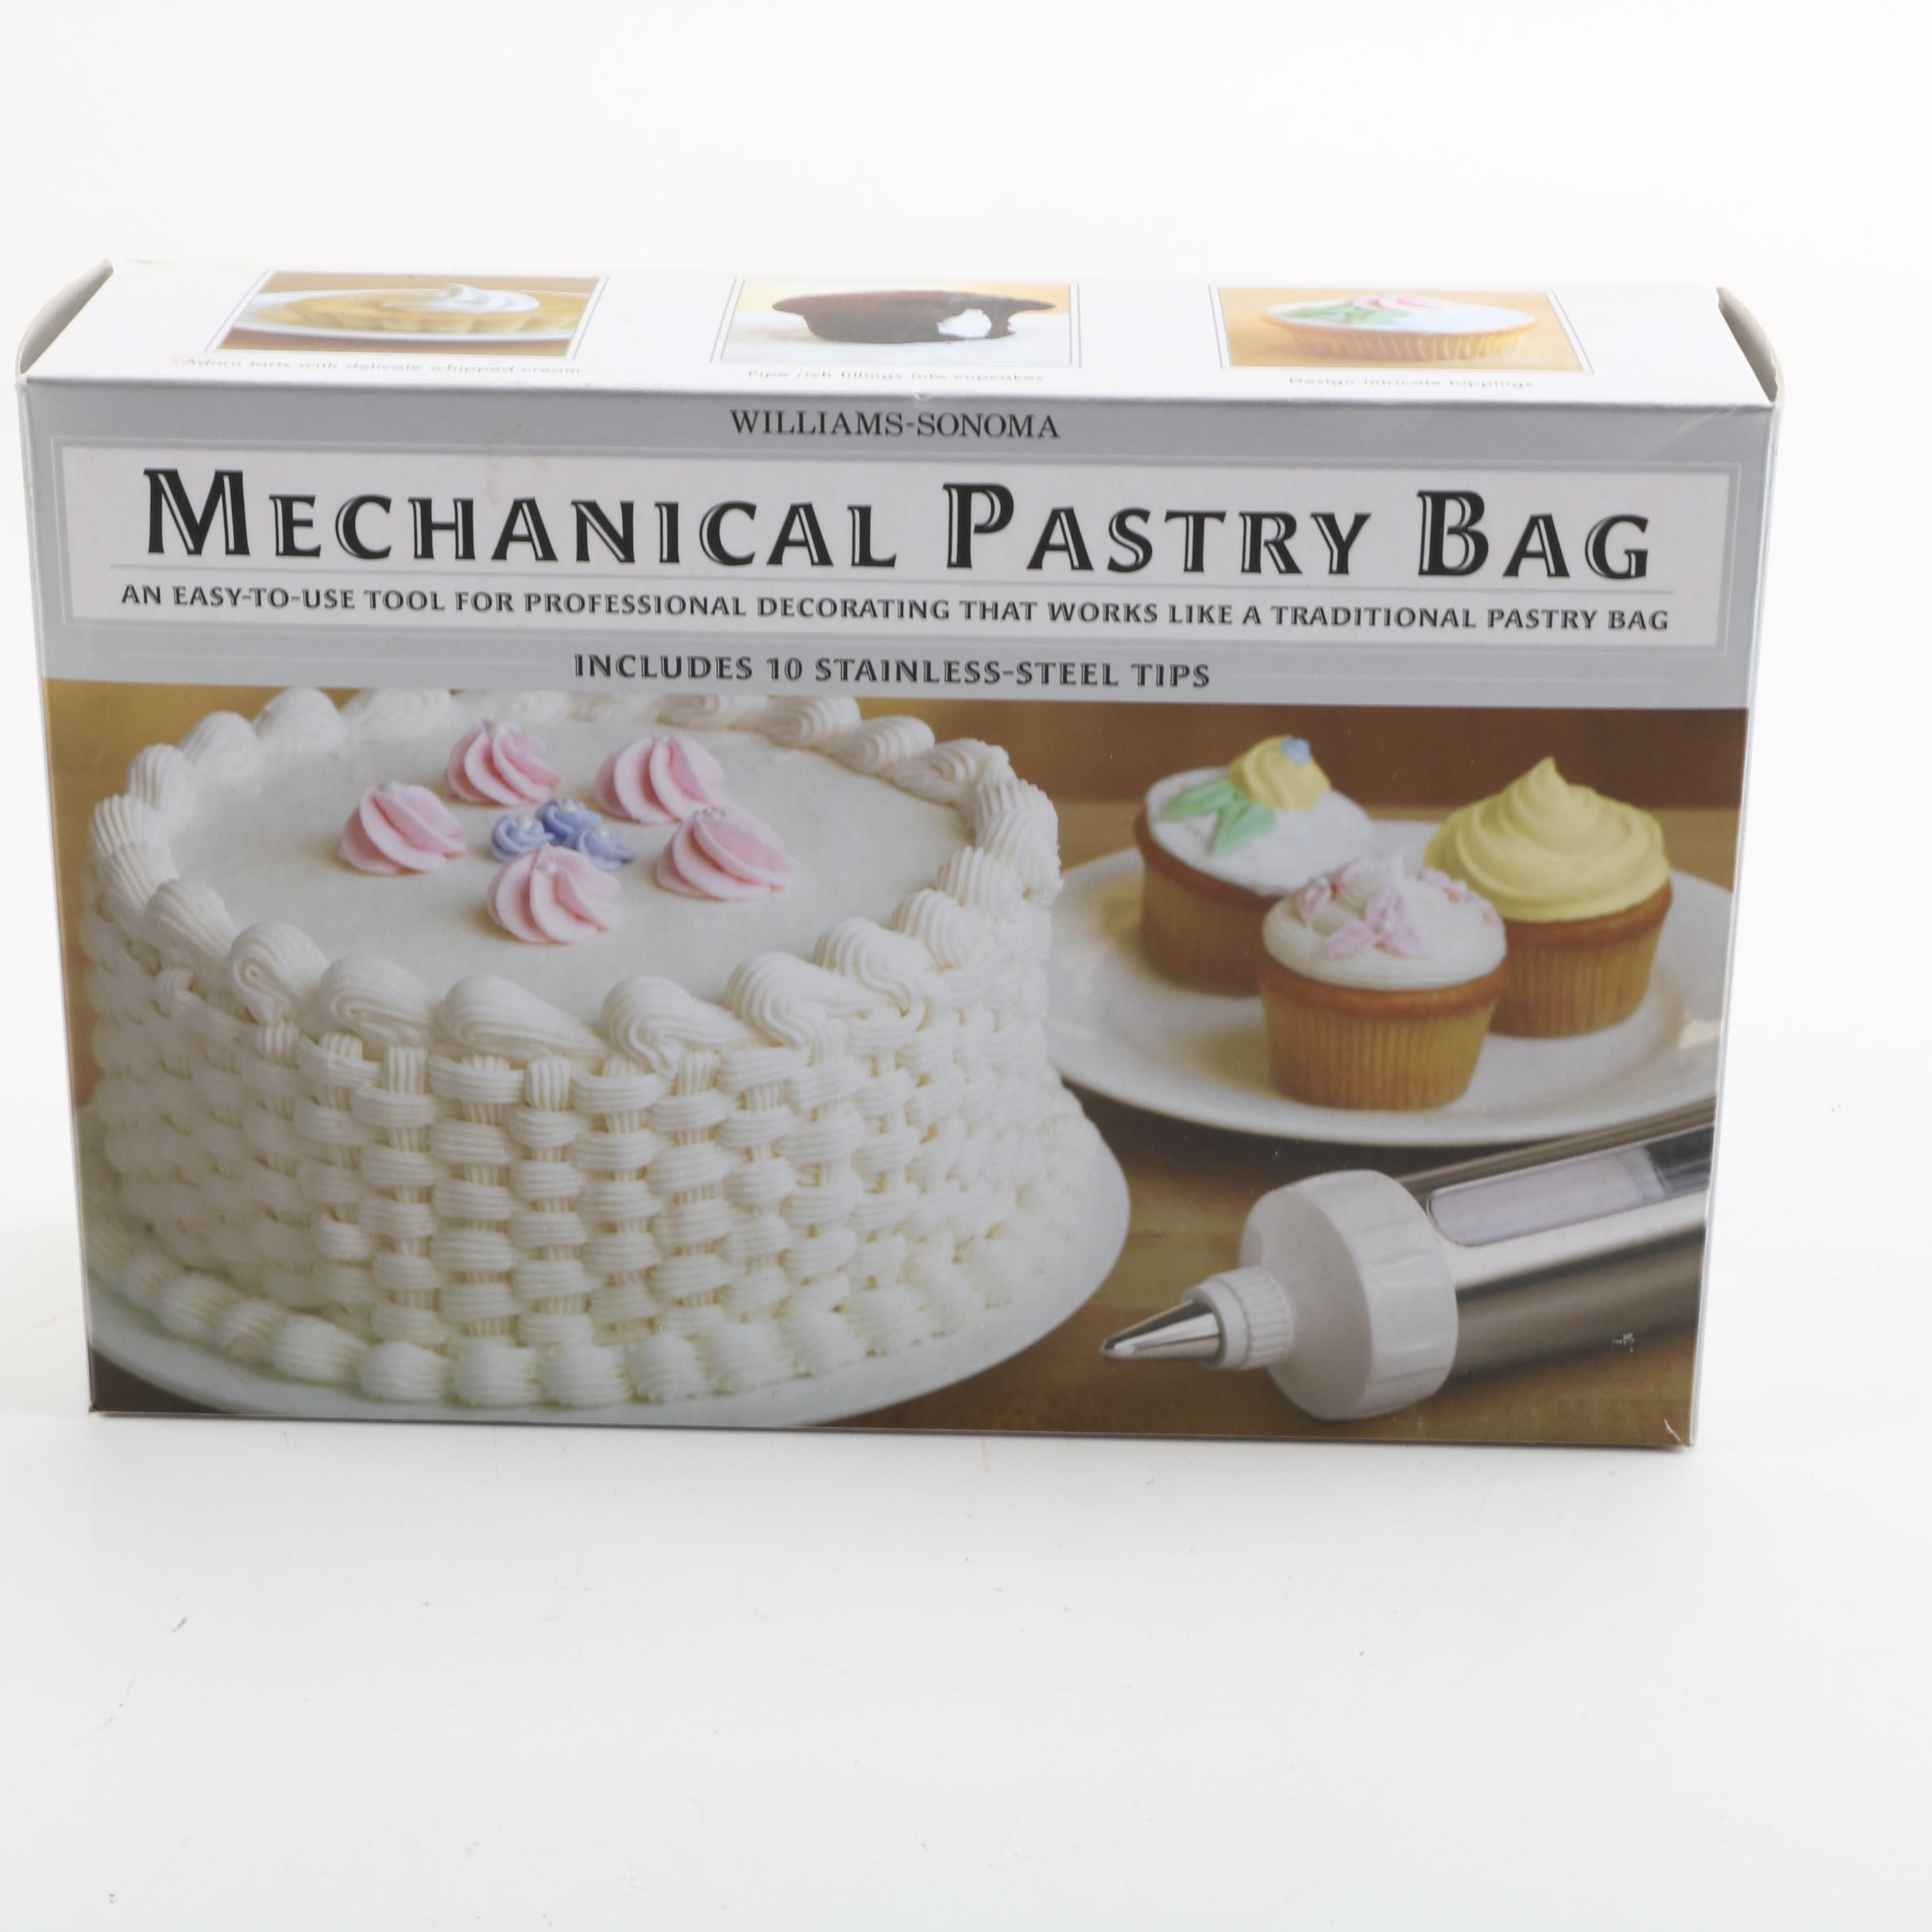 Williams-Sonoma Mechanical Pastry Bag Decorating Kit With Variety of Tips